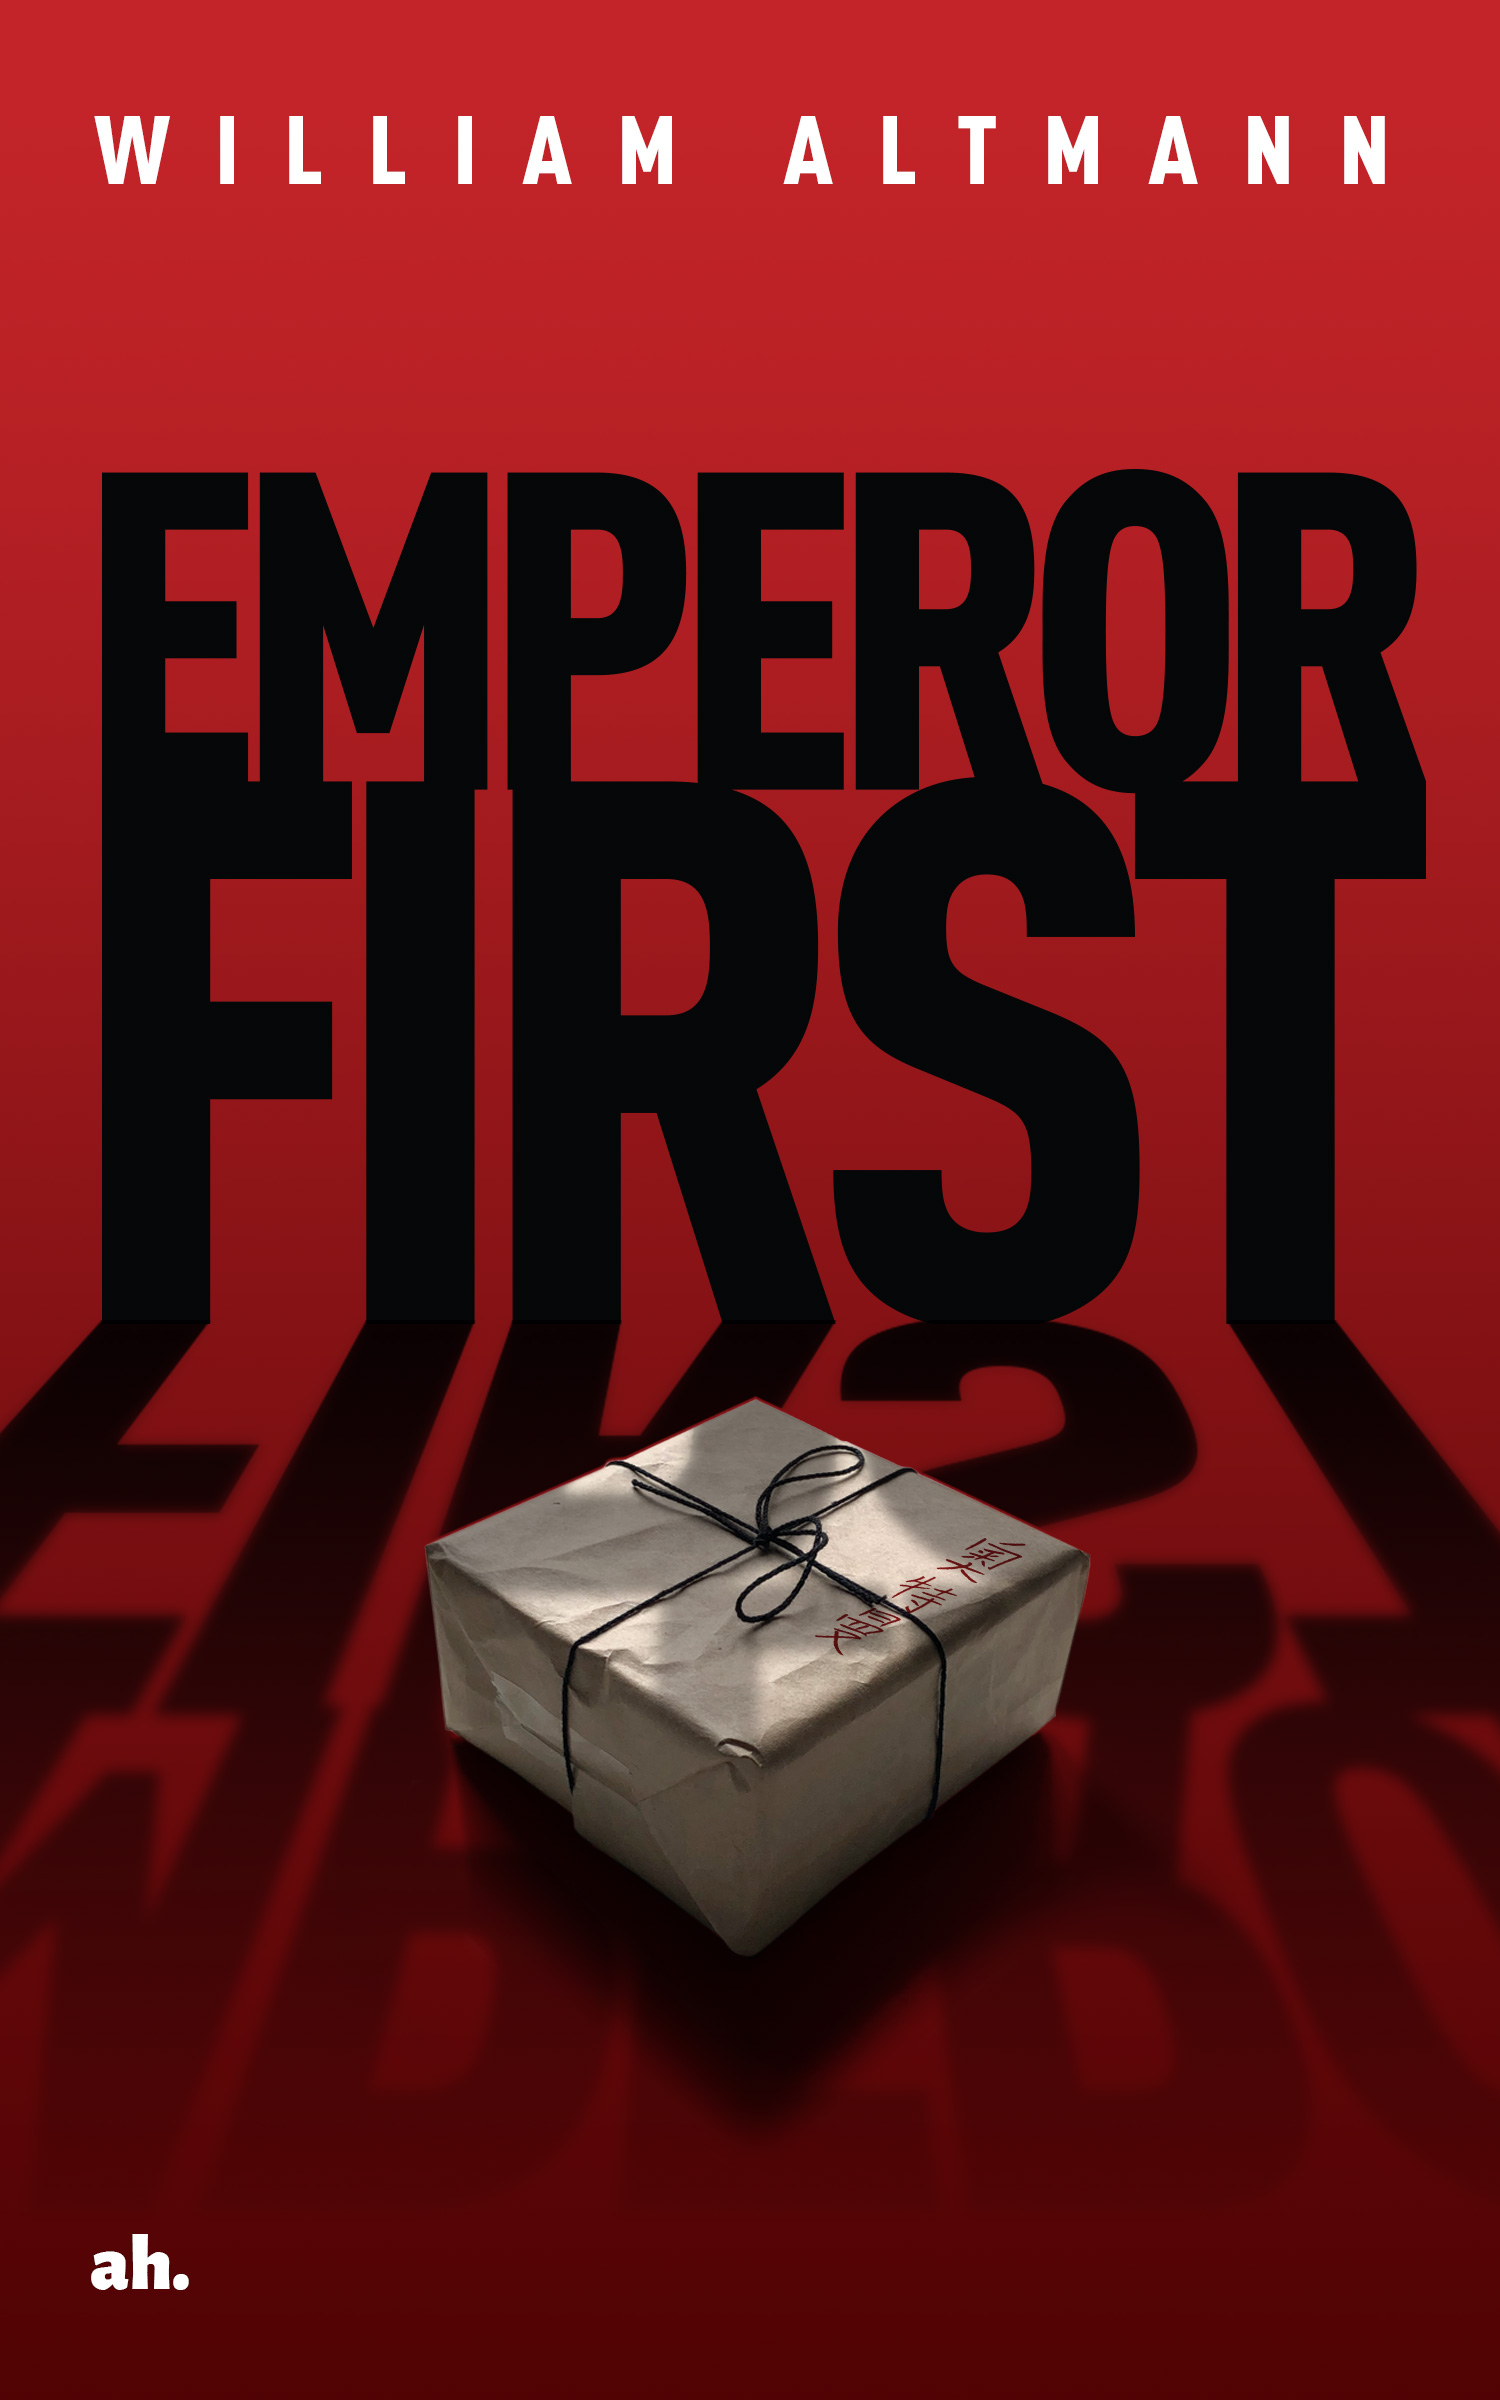 Emperor First